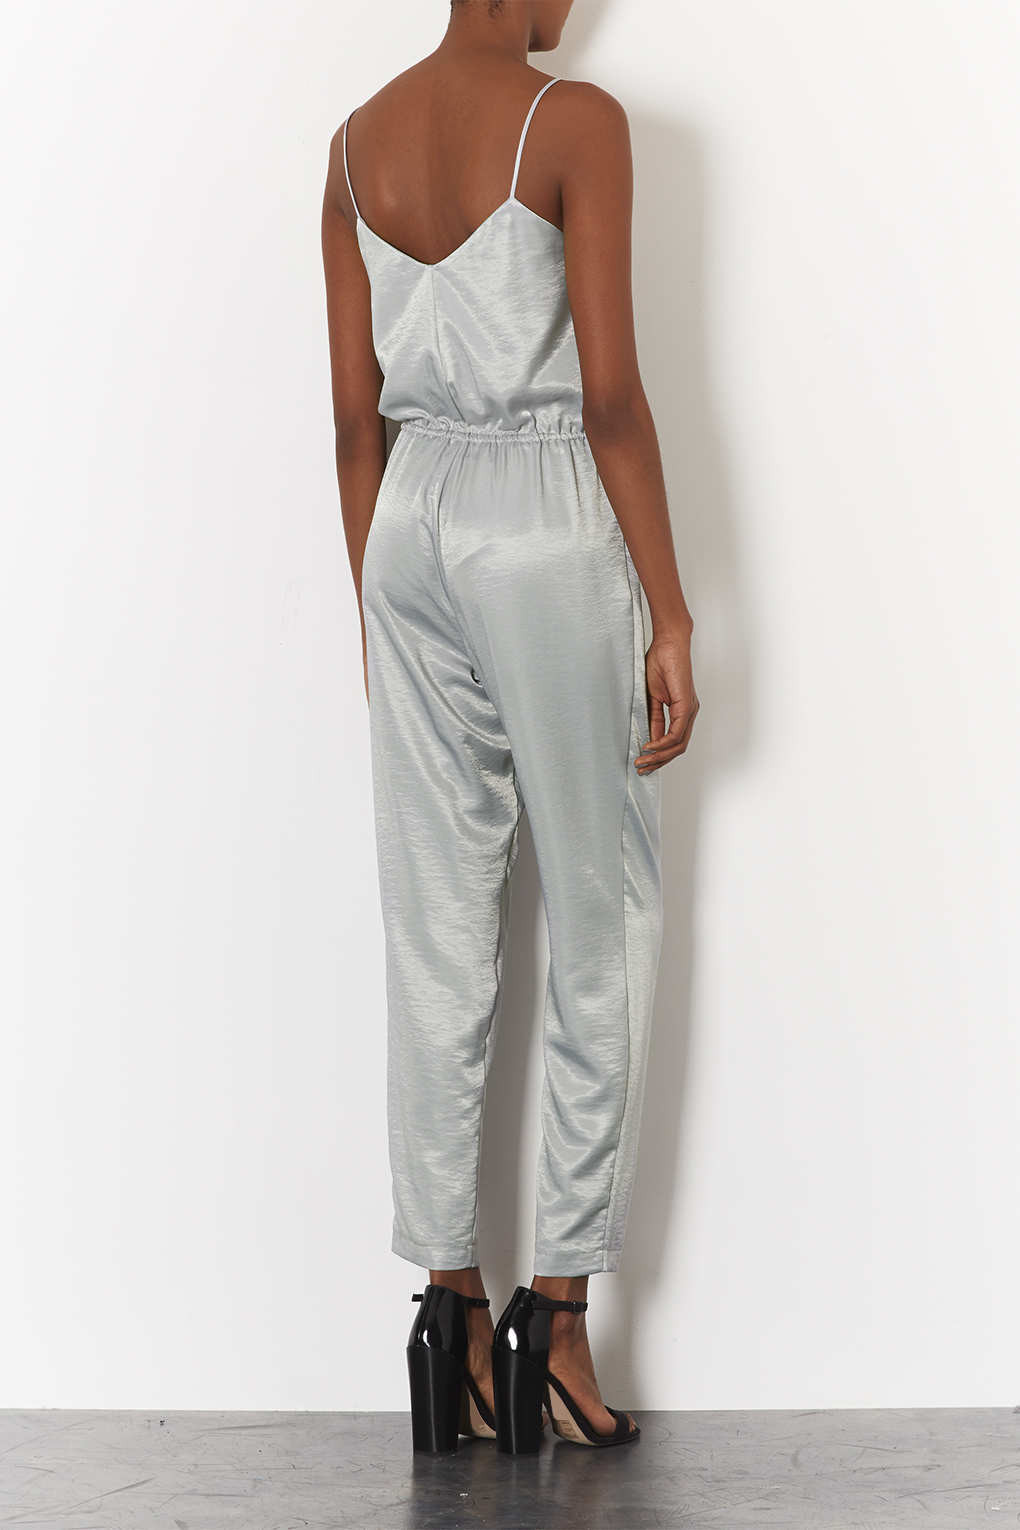 Topshop Silver Jumpsuit Fashion Ql